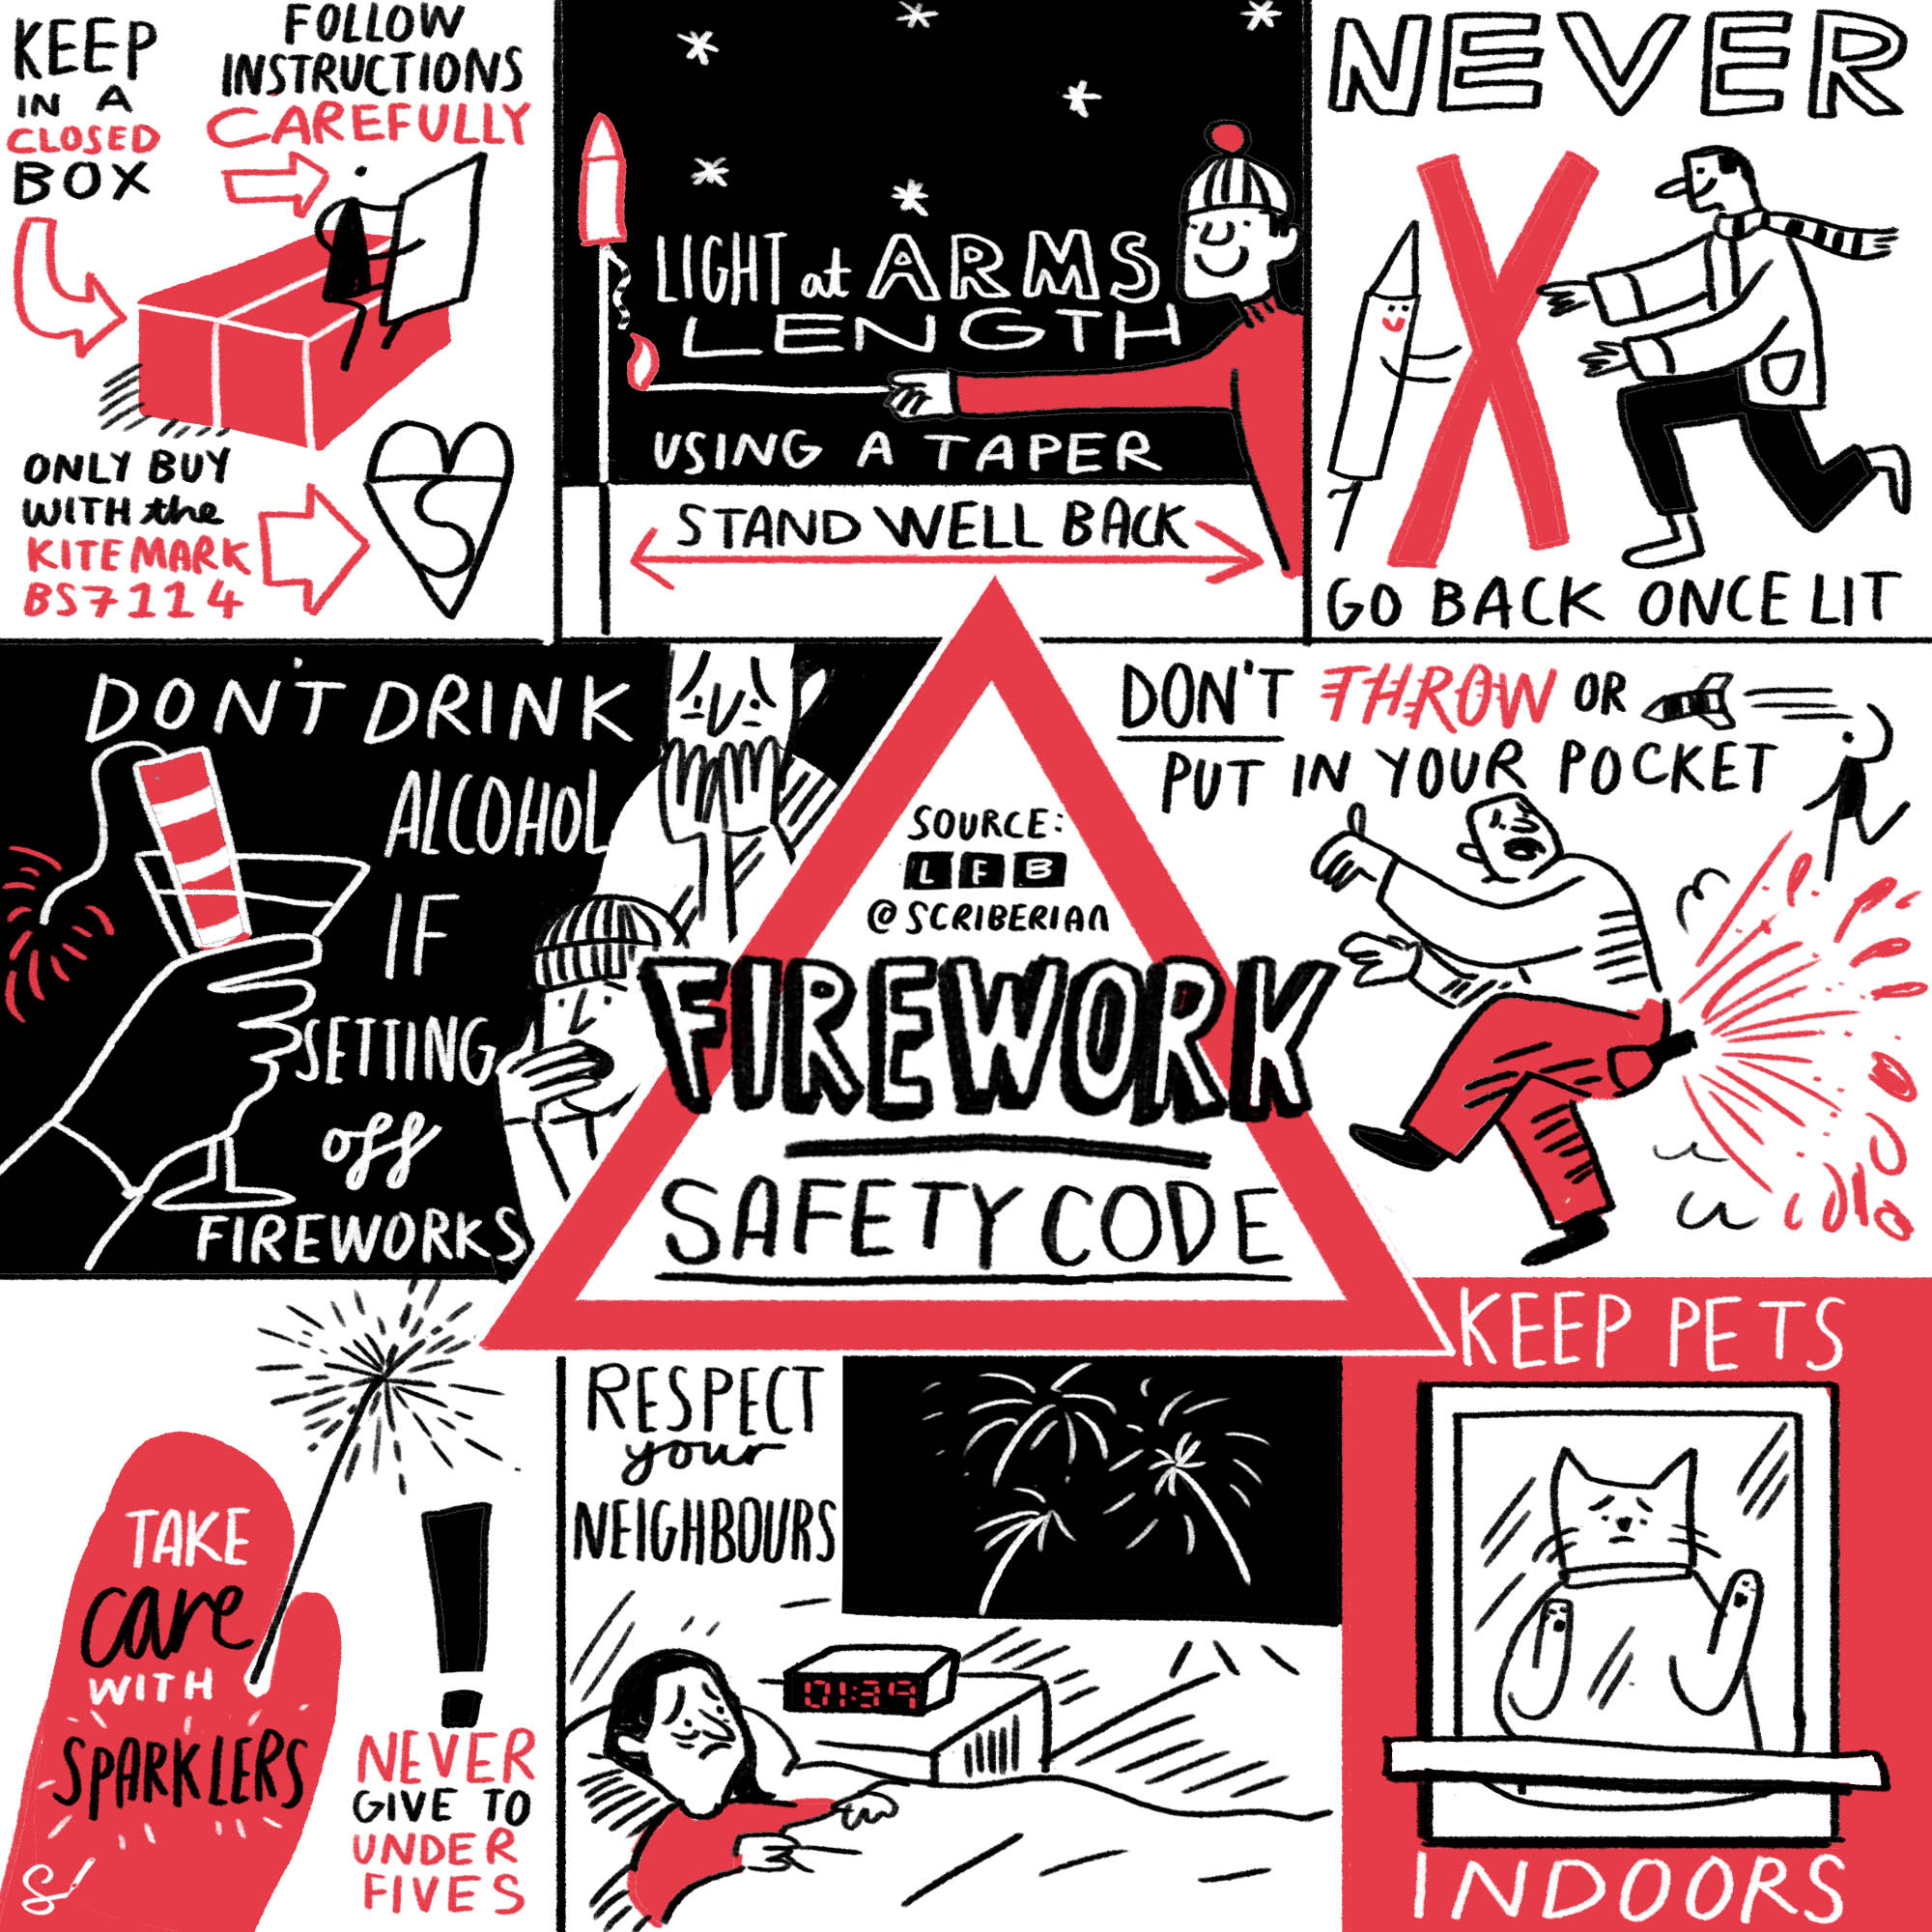 The Firework Safety Code. Source:  London Fire Brigade